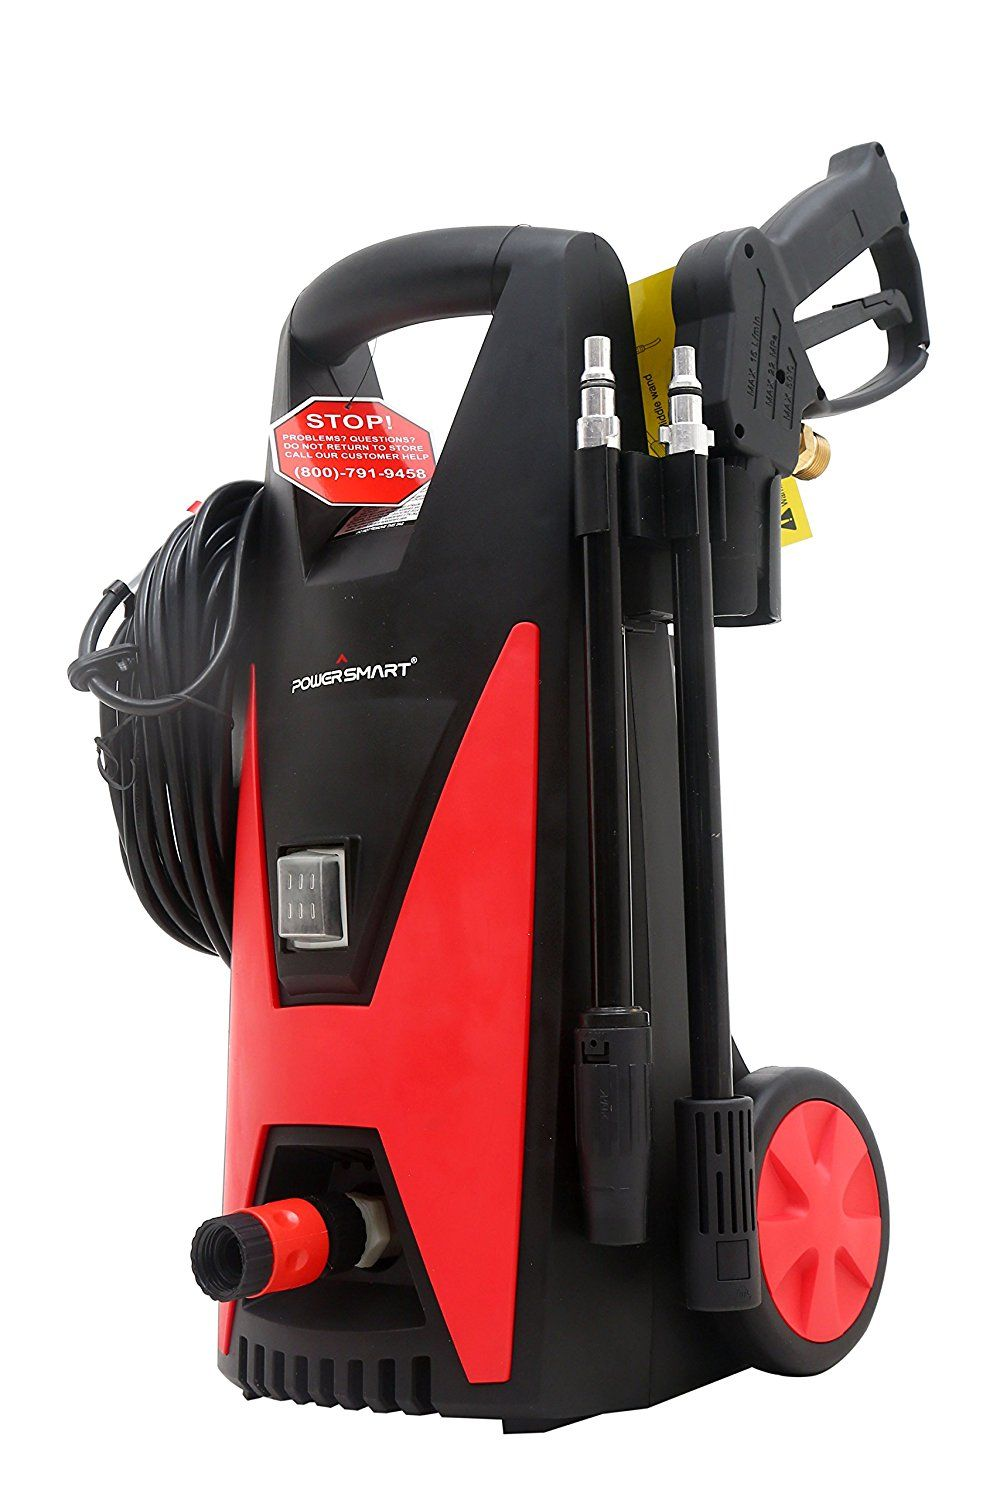 Pressure Washer Karcher Pressure Washer Karcher K2 Pressure Washers Electric Pressure Washer Jet Electric Pressure Washer Best Pressure Washer Pressure Washer